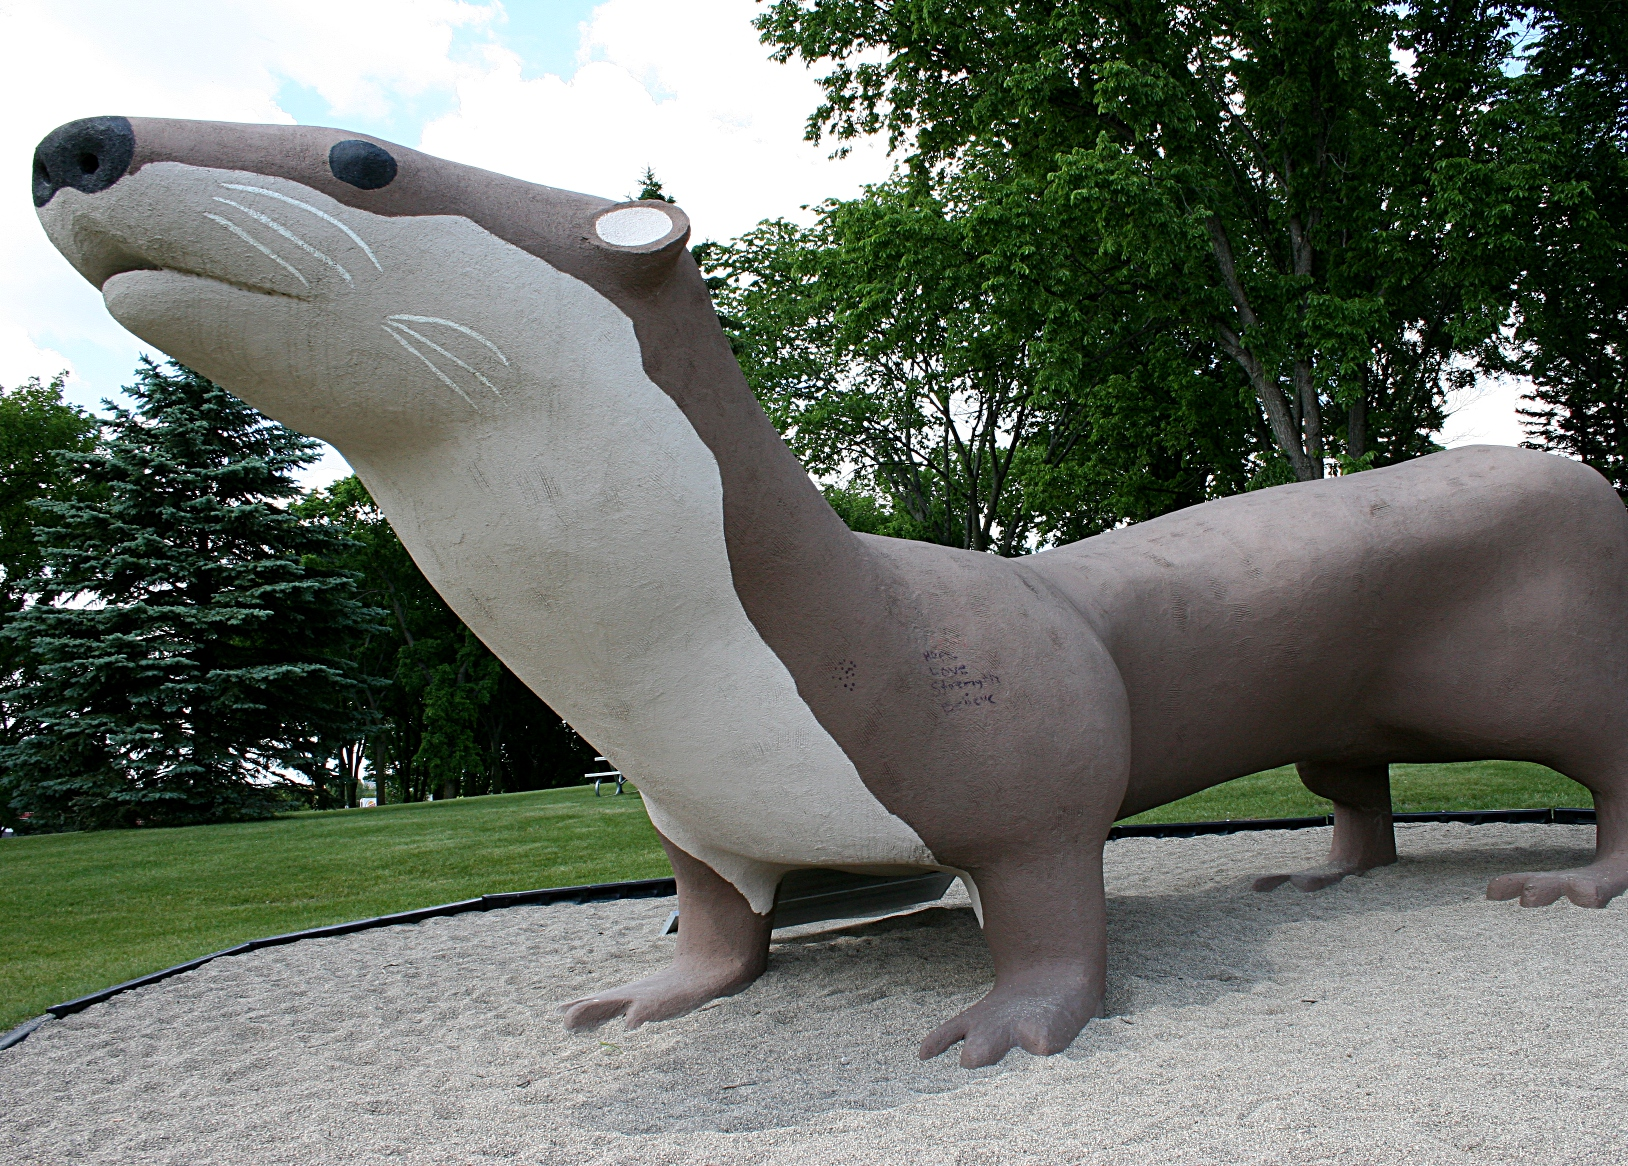 The Otto the otter statue in Adams Park in Fergus Falls. The Otter Tail River runs through this city where the Fergus Falls High School mascot is the otter.